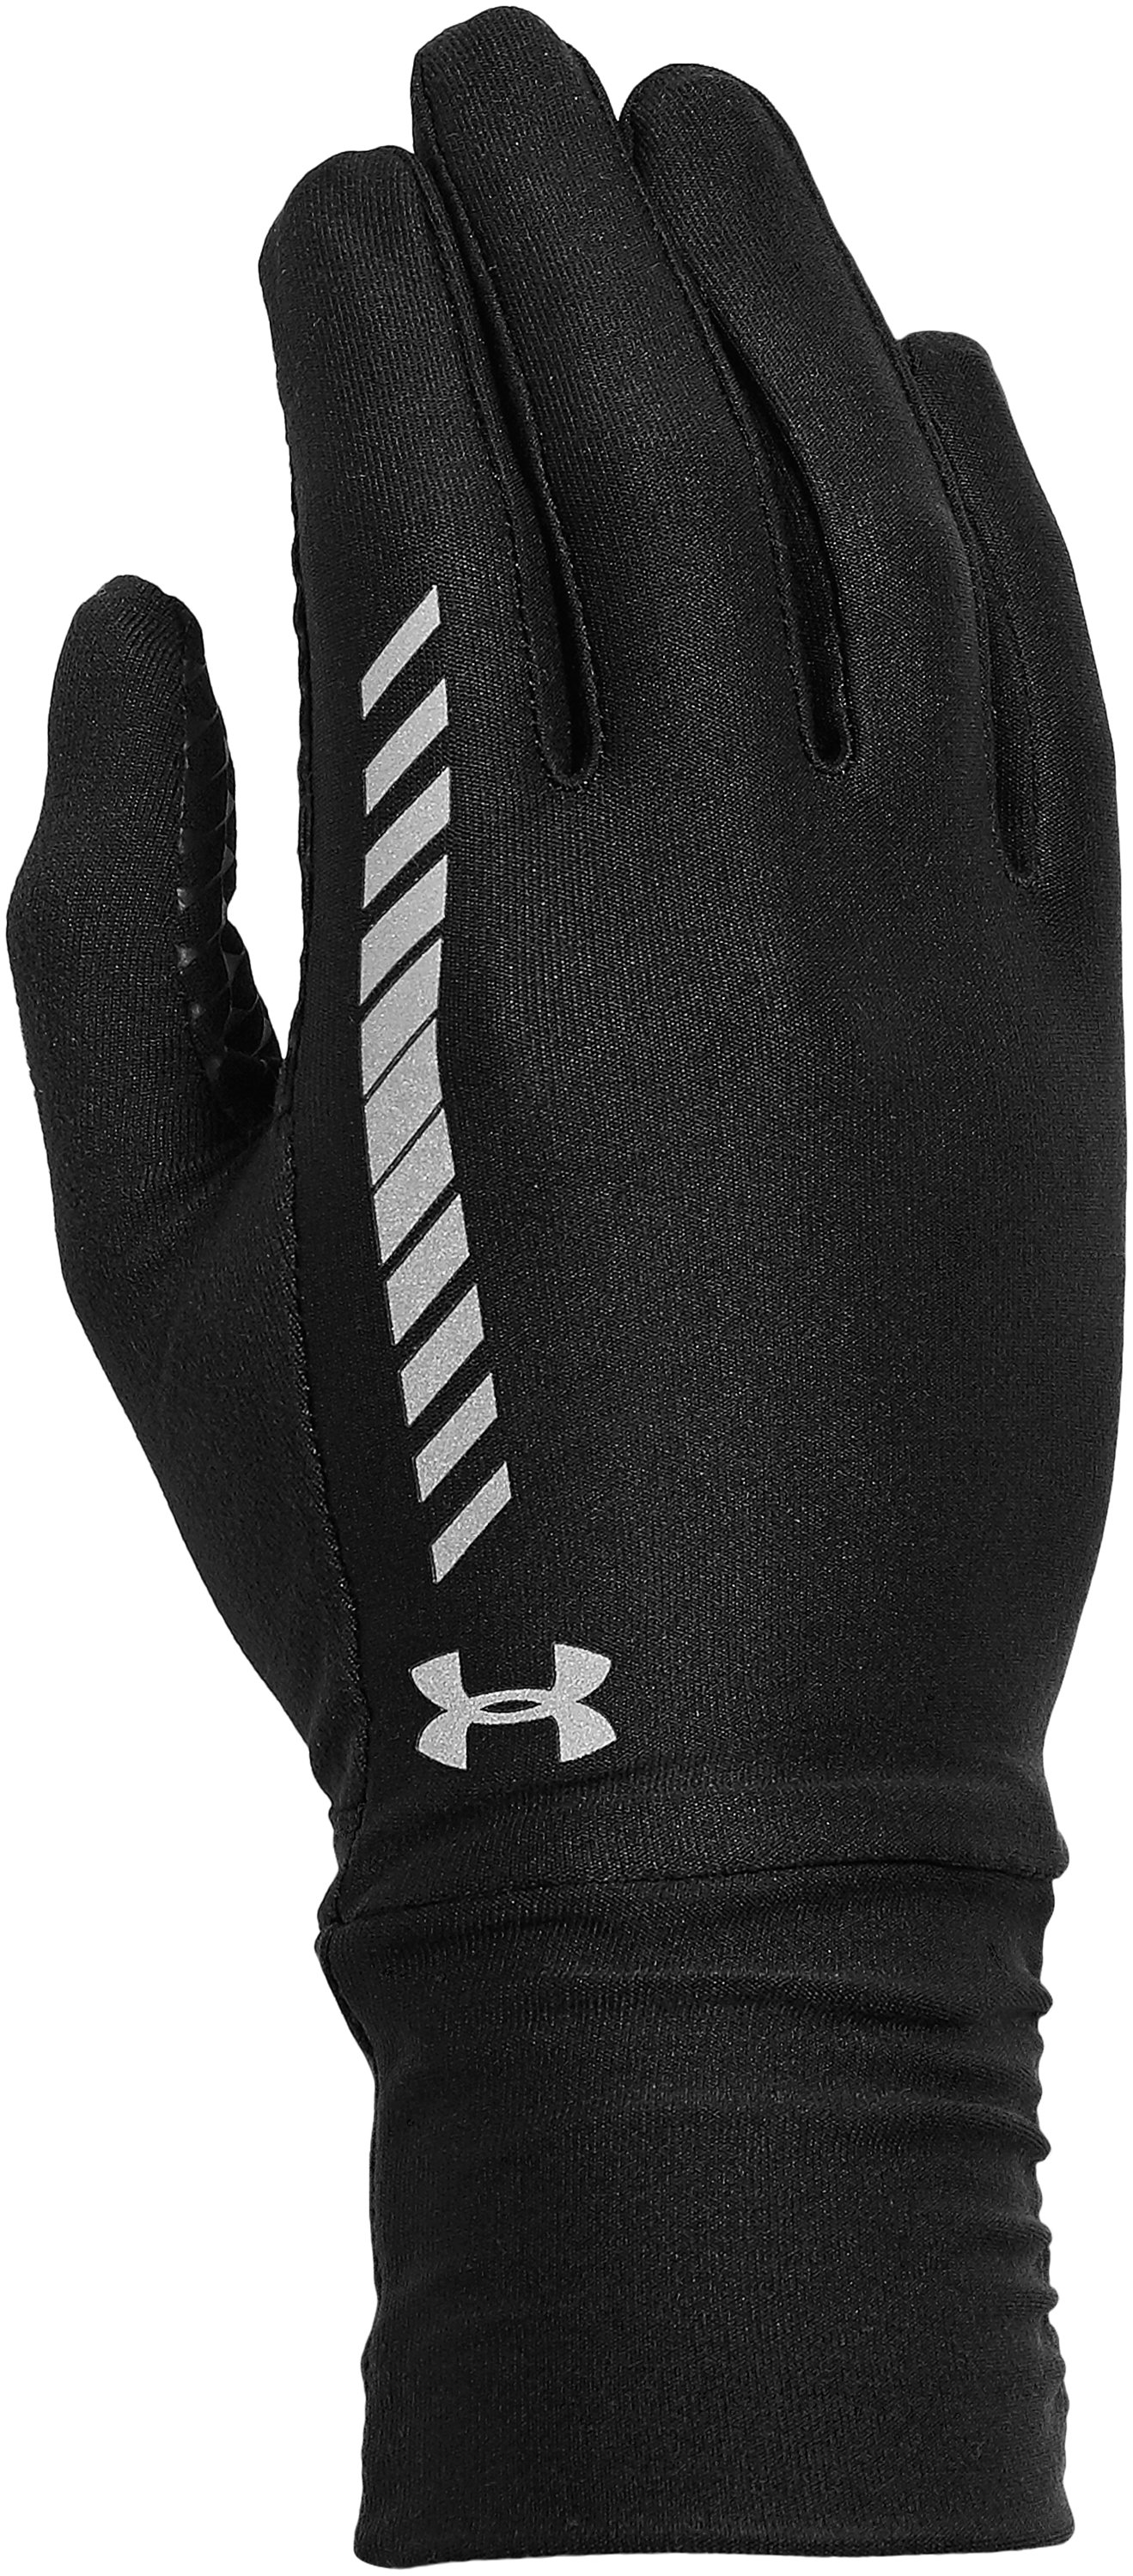 Women's UA Layered Up! Liner Glove, Black , zoomed image